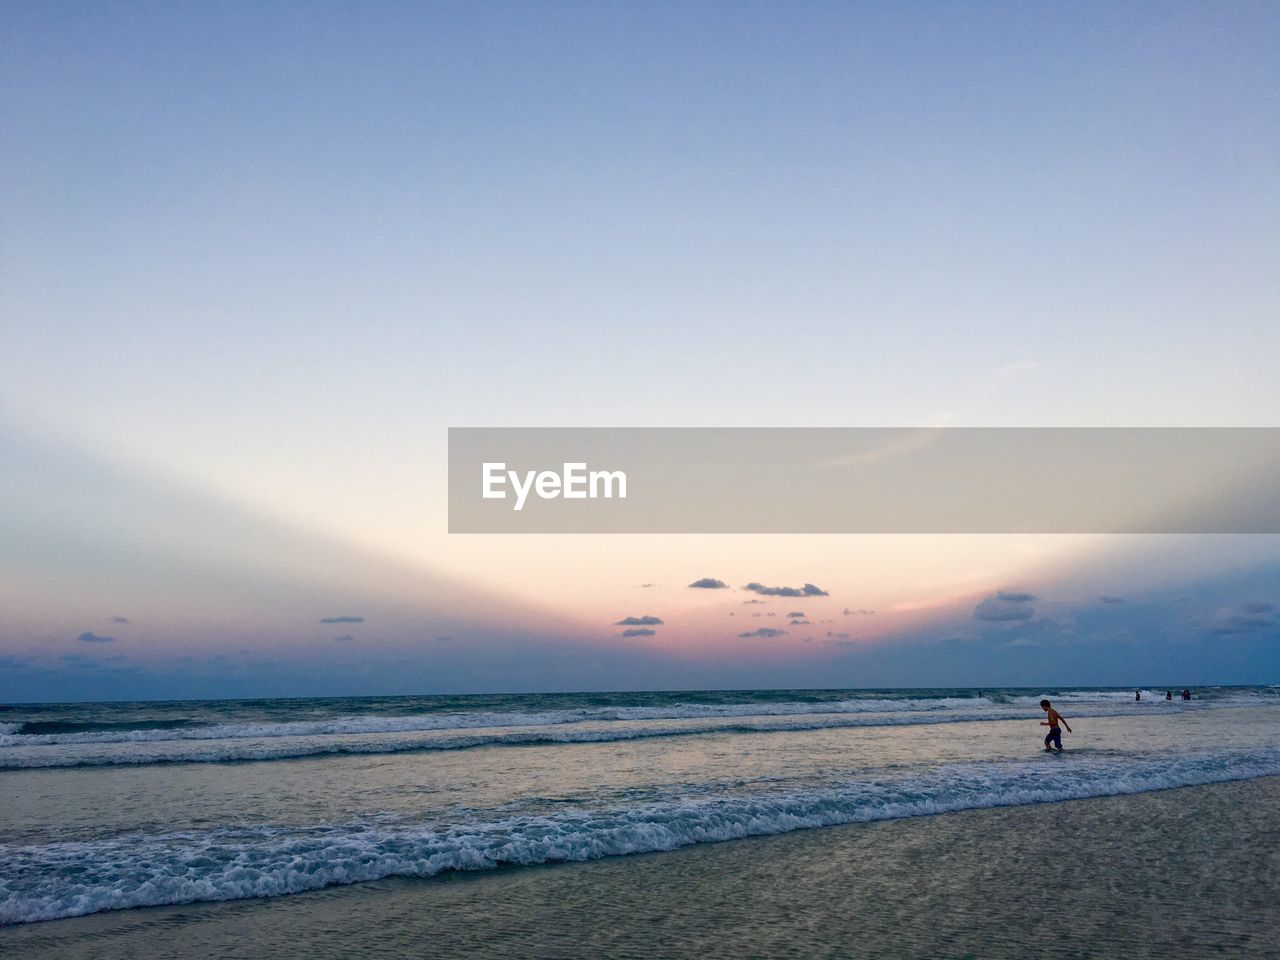 sea, beach, water, beauty in nature, nature, sunset, scenics, shore, real people, sand, horizon over water, tranquil scene, sky, outdoors, one person, wave, tranquility, leisure activity, lifestyles, standing, men, vacations, day, people